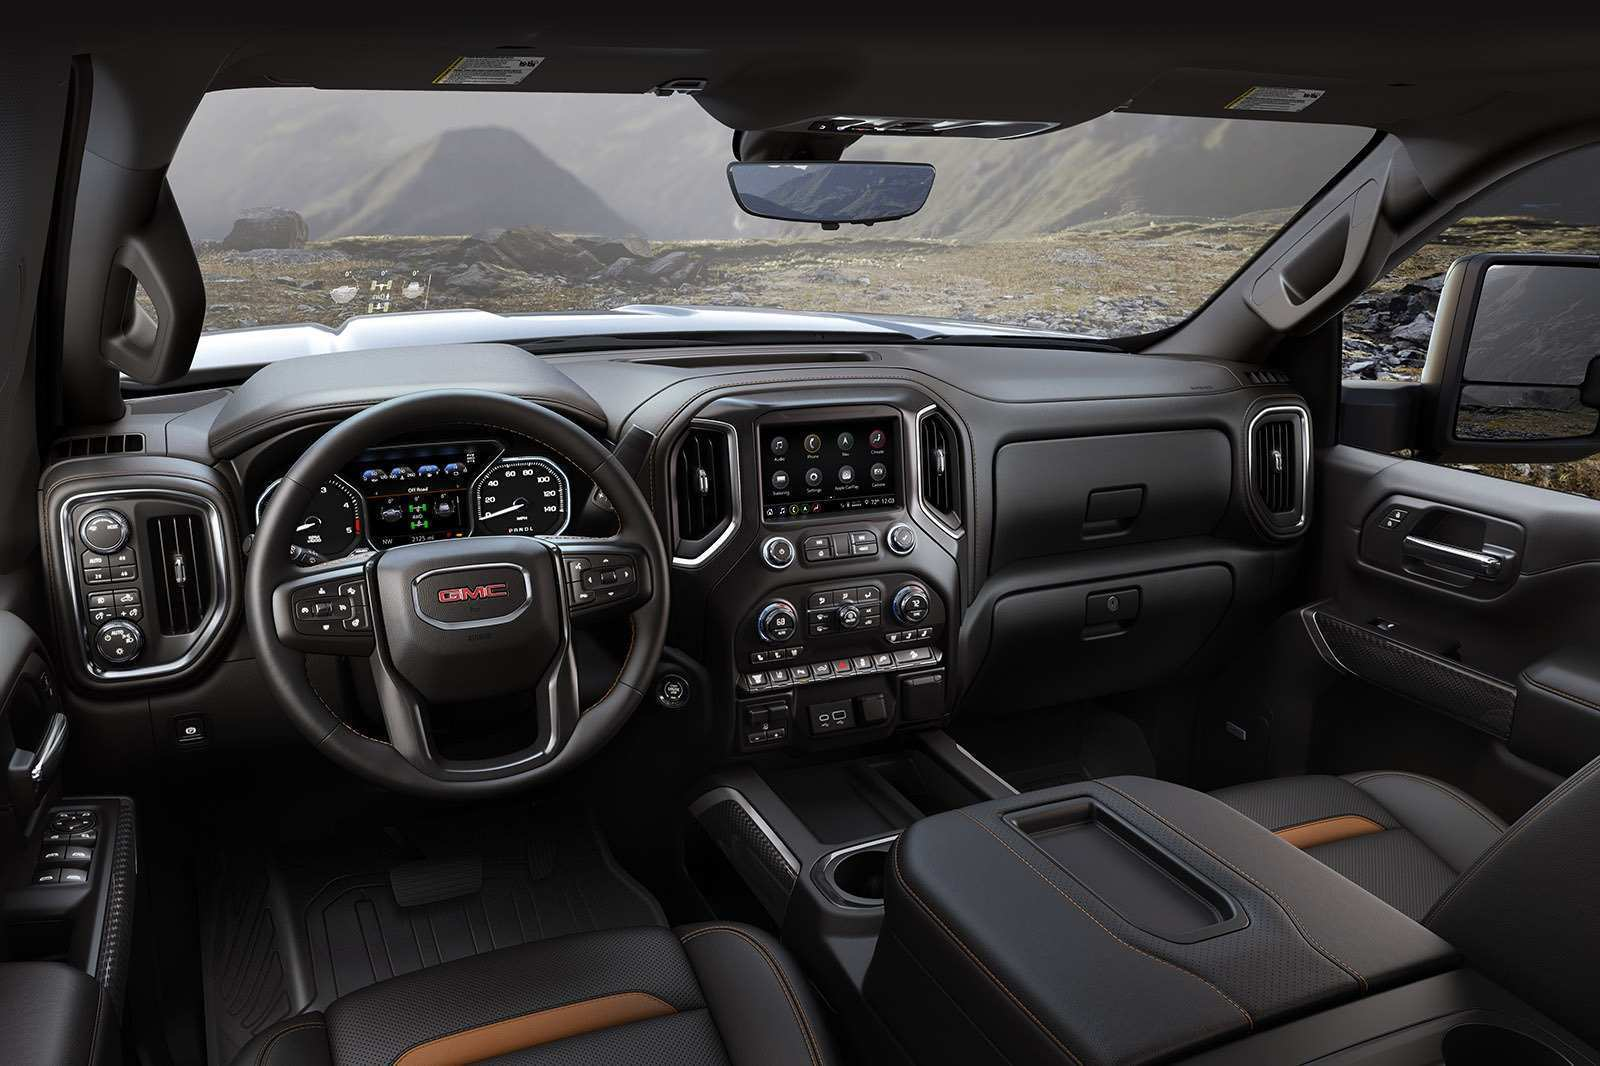 72 New Best Gmc Denali 2019 Interior Exterior And Review Research New for Best Gmc Denali 2019 Interior Exterior And Review